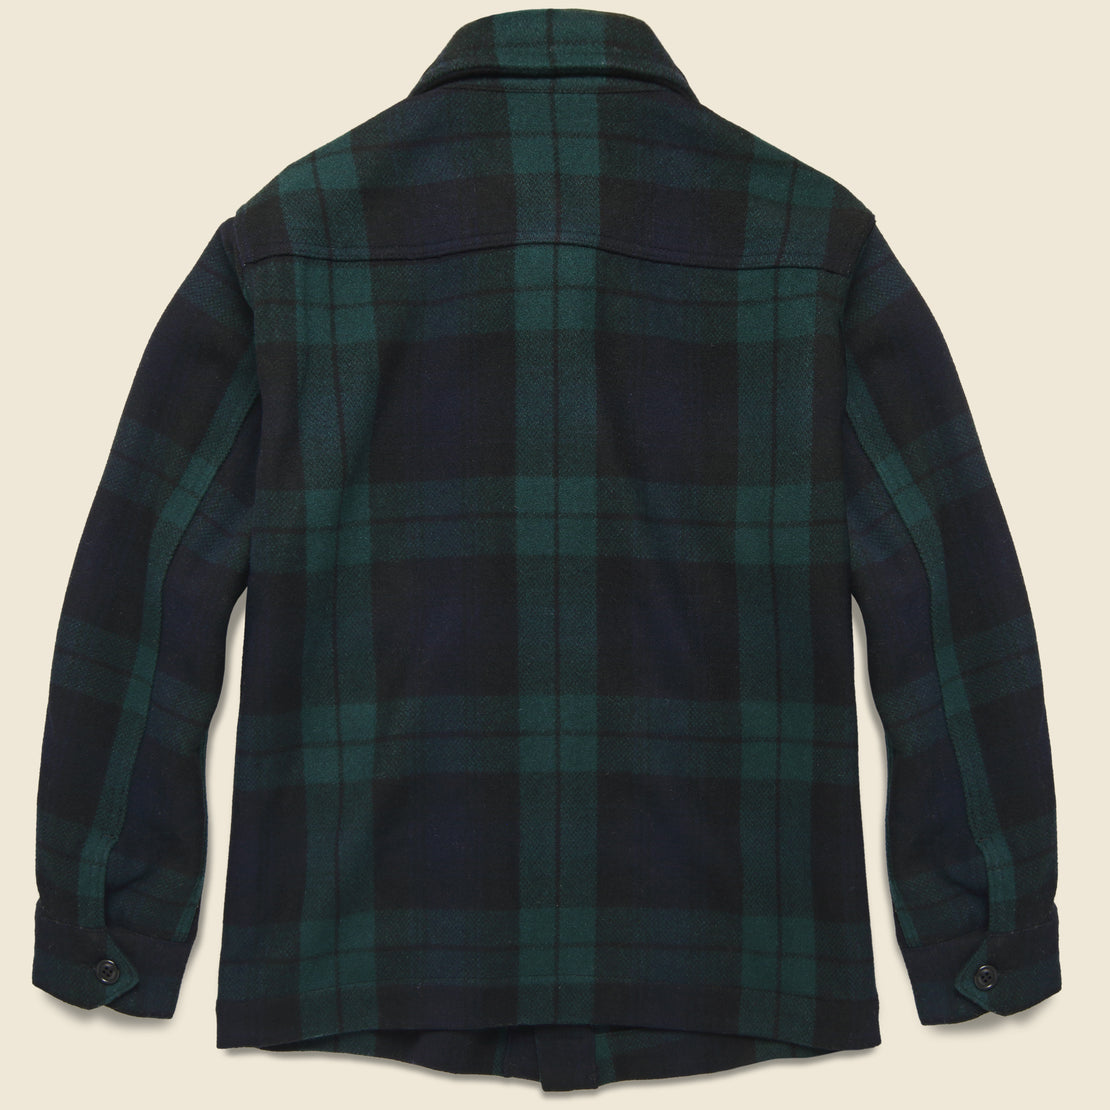 Blackwatch Wool Chore Jacket - Black/Green